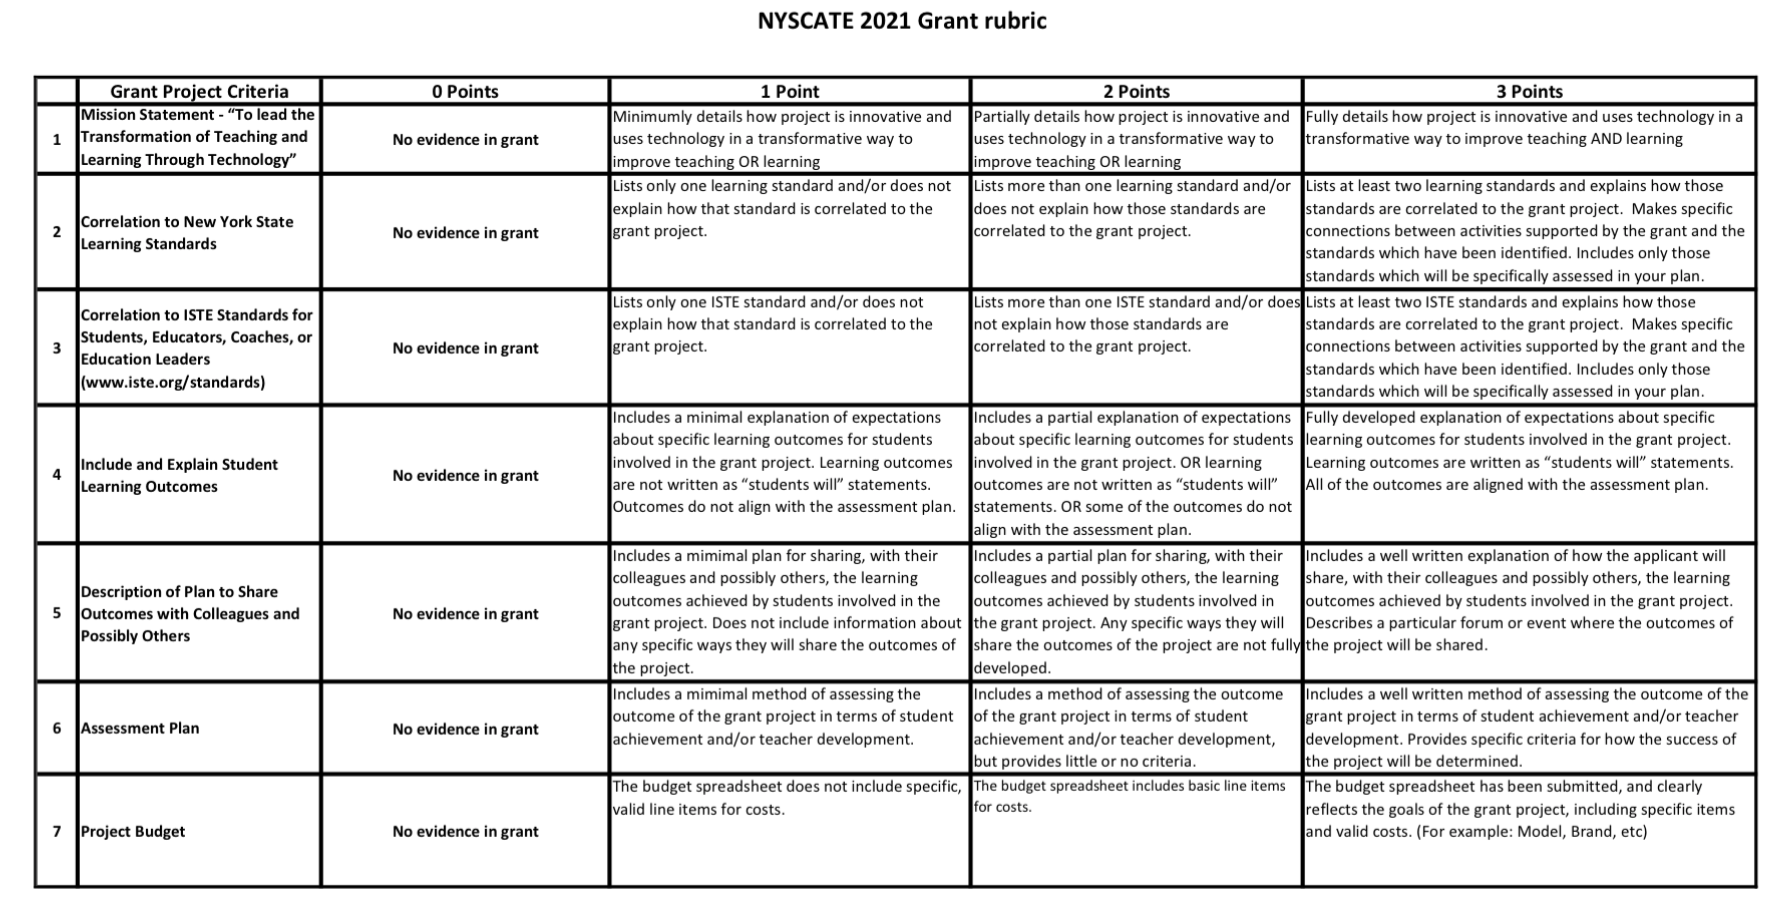 NYSCATE 2021 Grant Rubric